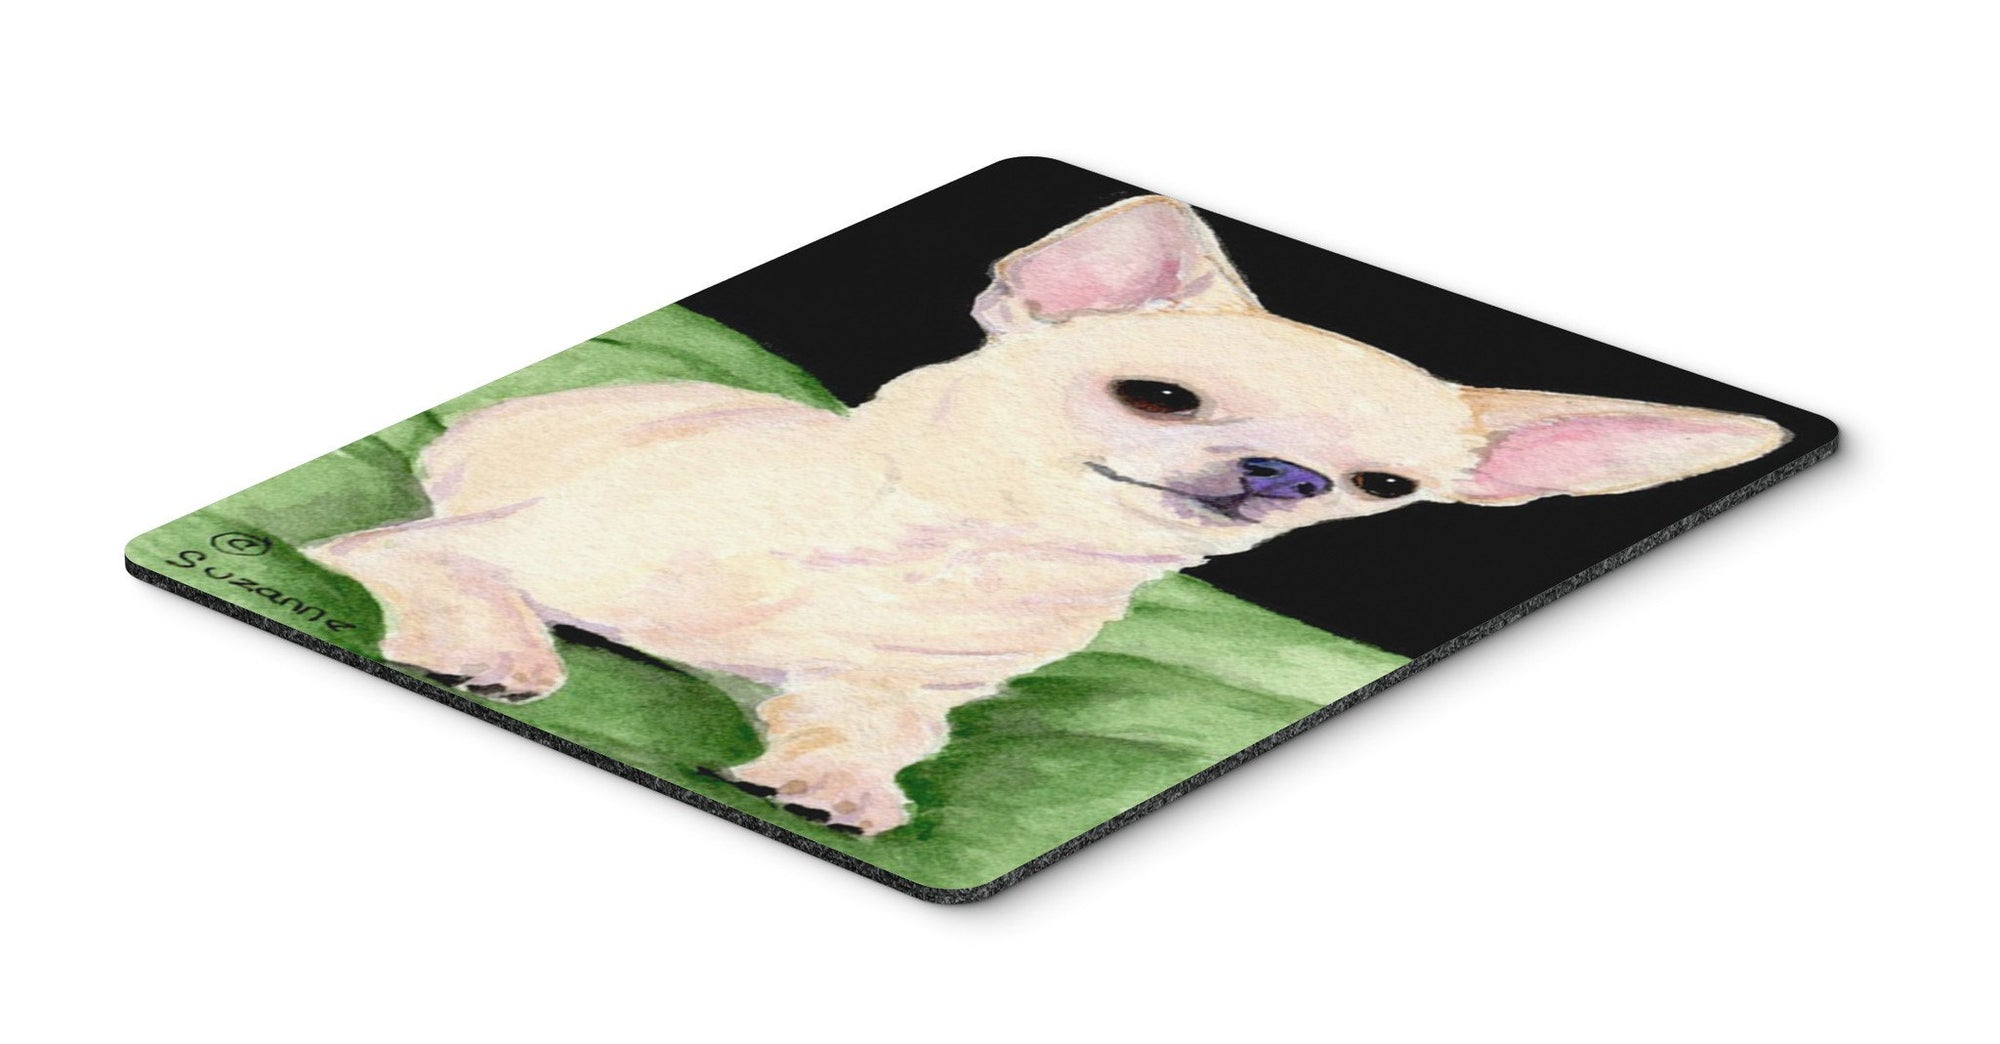 Chihuahua Mouse Pad / Hot Pad / Trivet by Caroline's Treasures